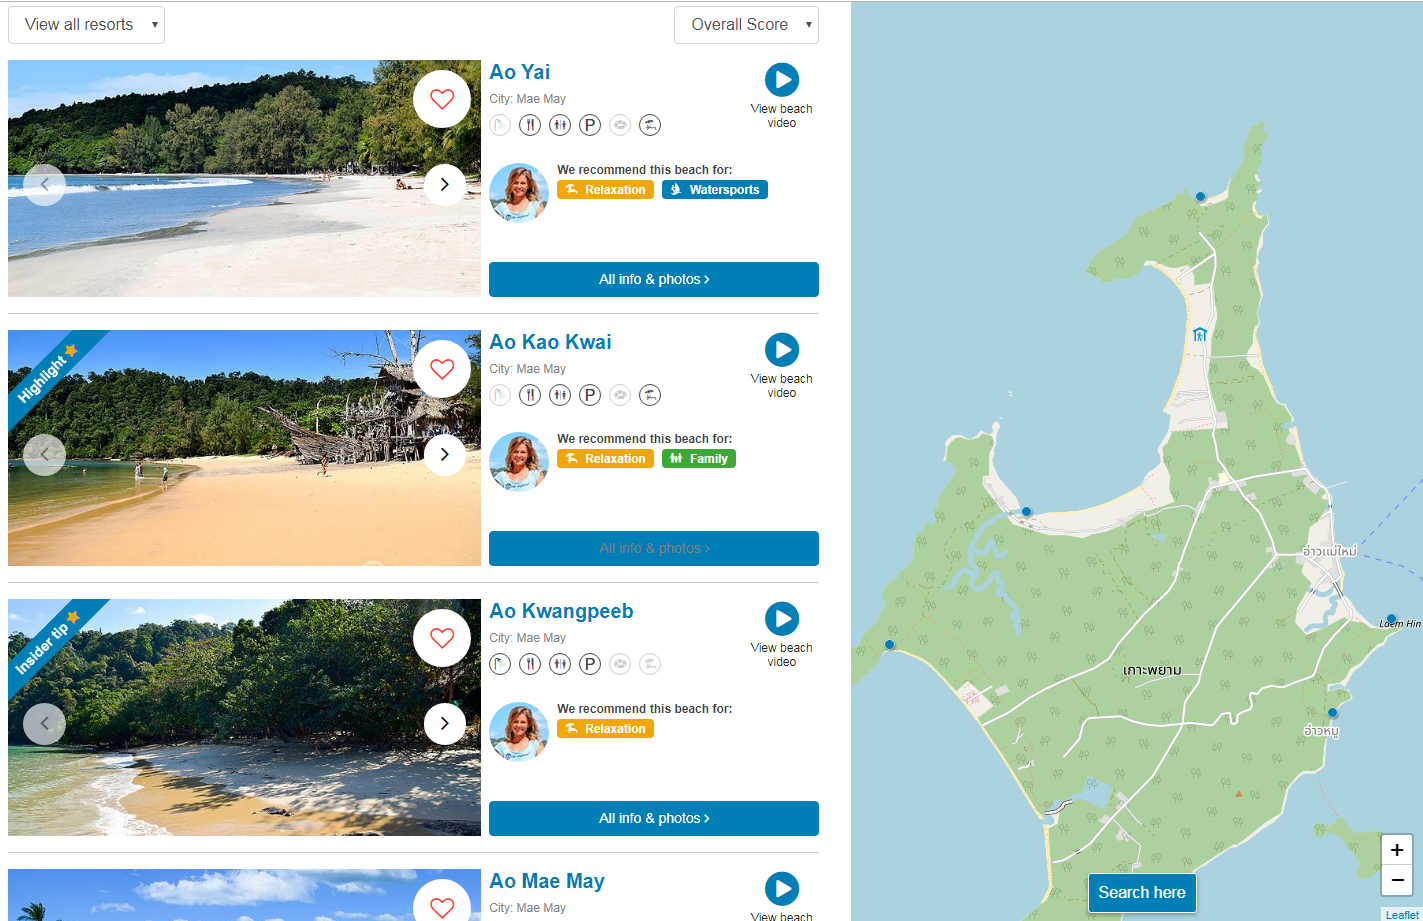 Find an Agoda hotel using the Beach Inspector website